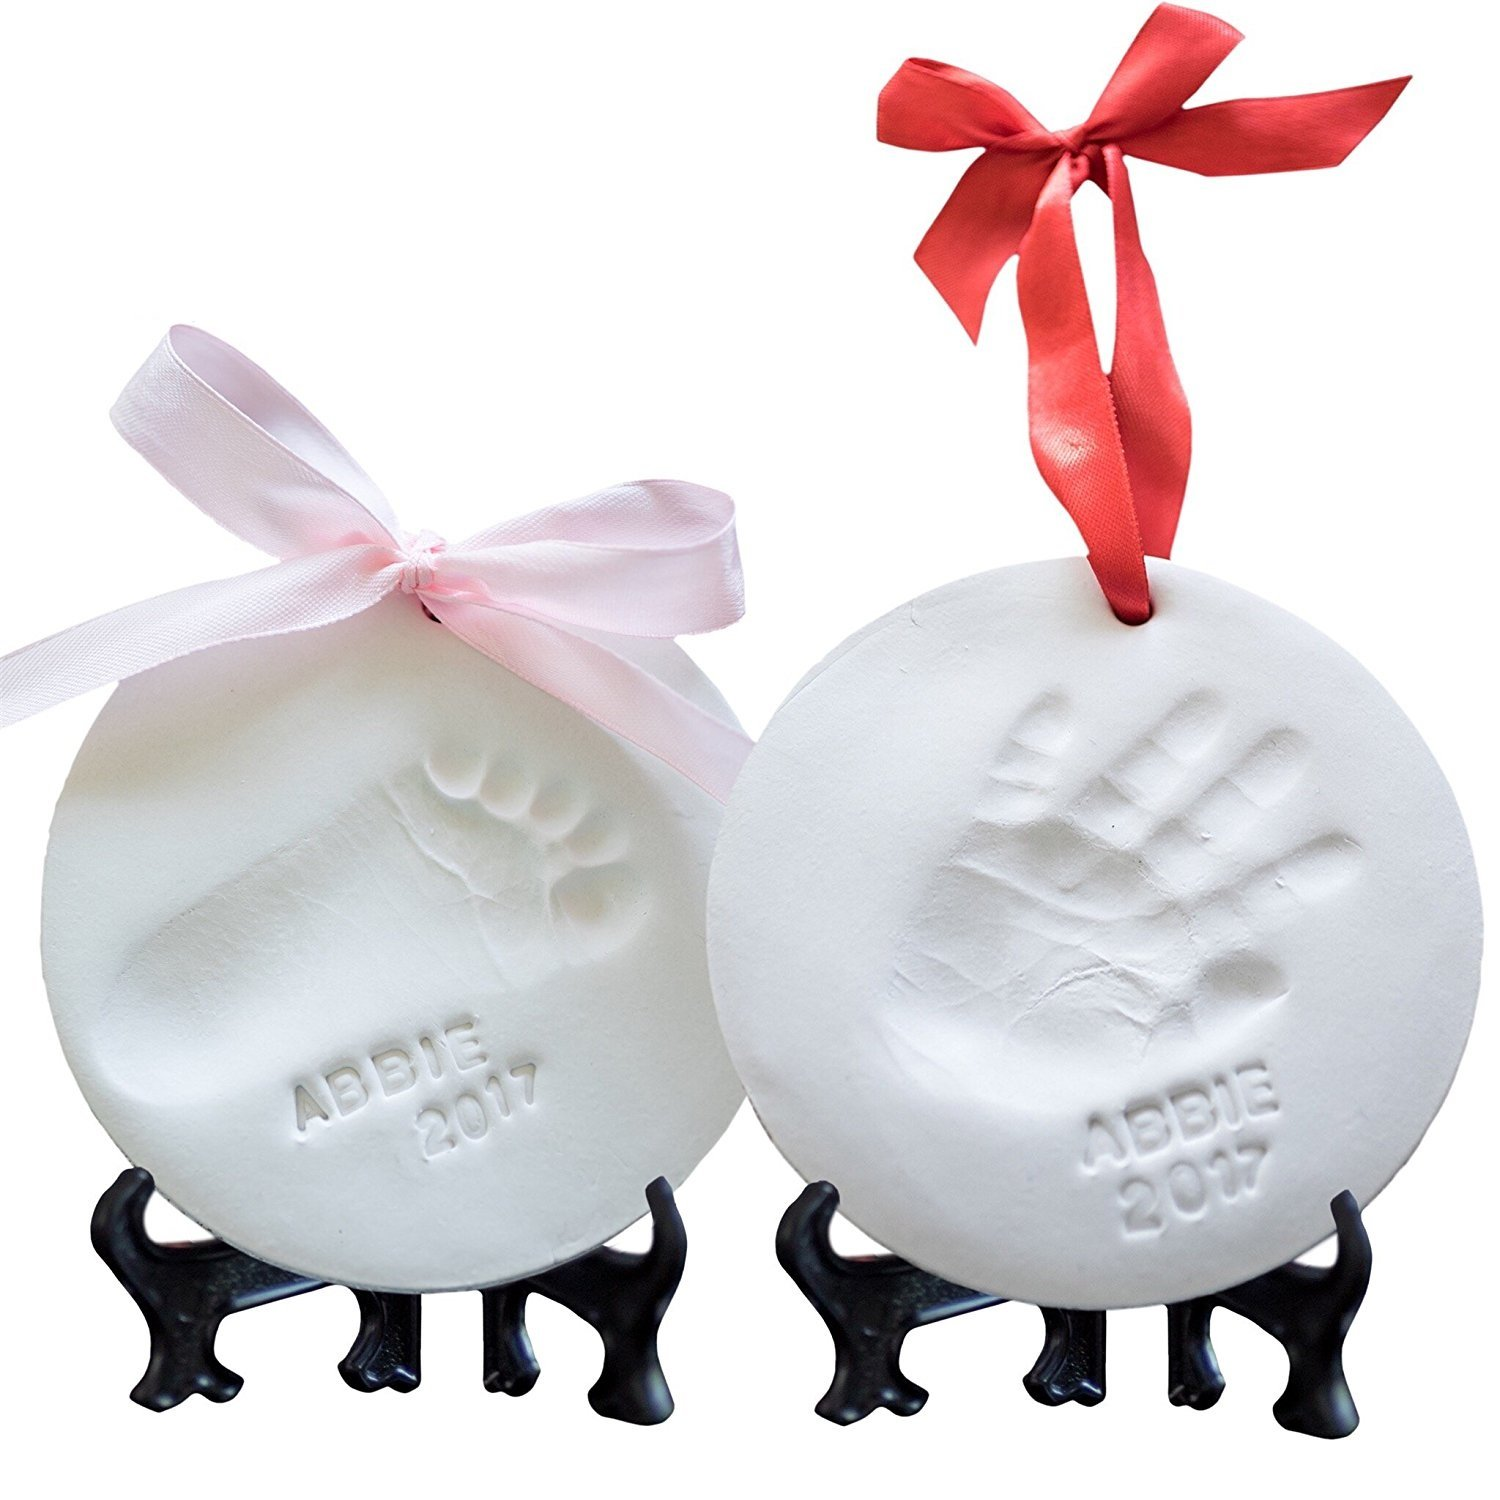 Baby Ornament Keepsake Kit (NEWBORN BUNDLE) 2 EASELS, 4 RIBBONS & LETTERS! Baby Handprint Kit and Footprint Kit, Clay Casting Kit for Baby Shower Gifts, Boys & Girls by Little Hippo